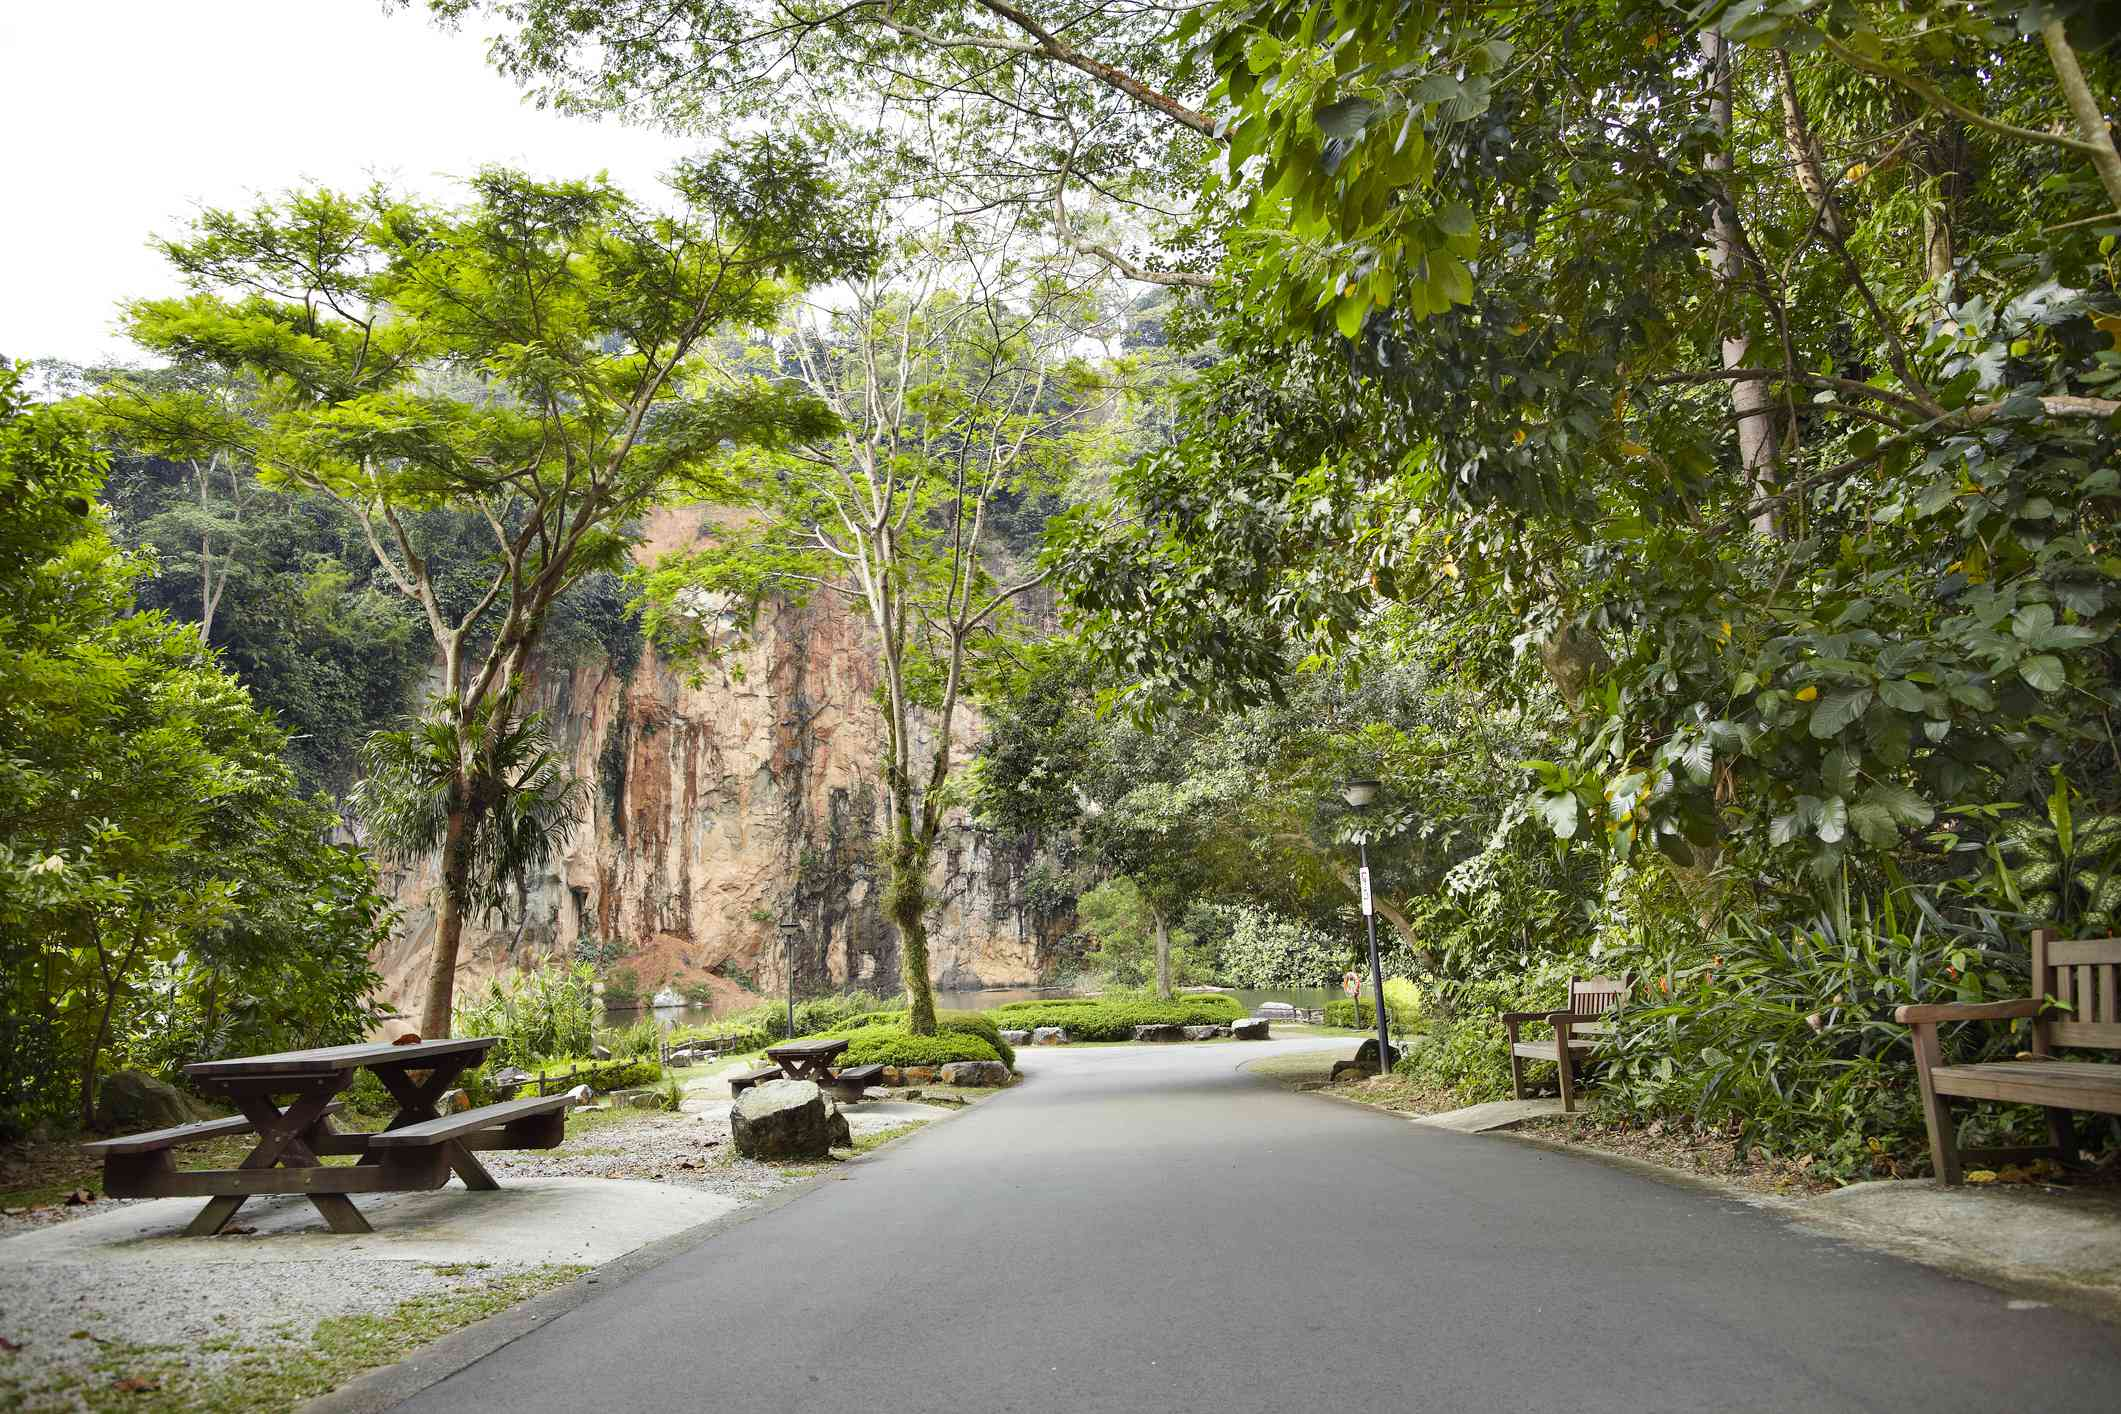 a path in Bukit Timah Nature Reserve with lush green trees and a brown picnic table